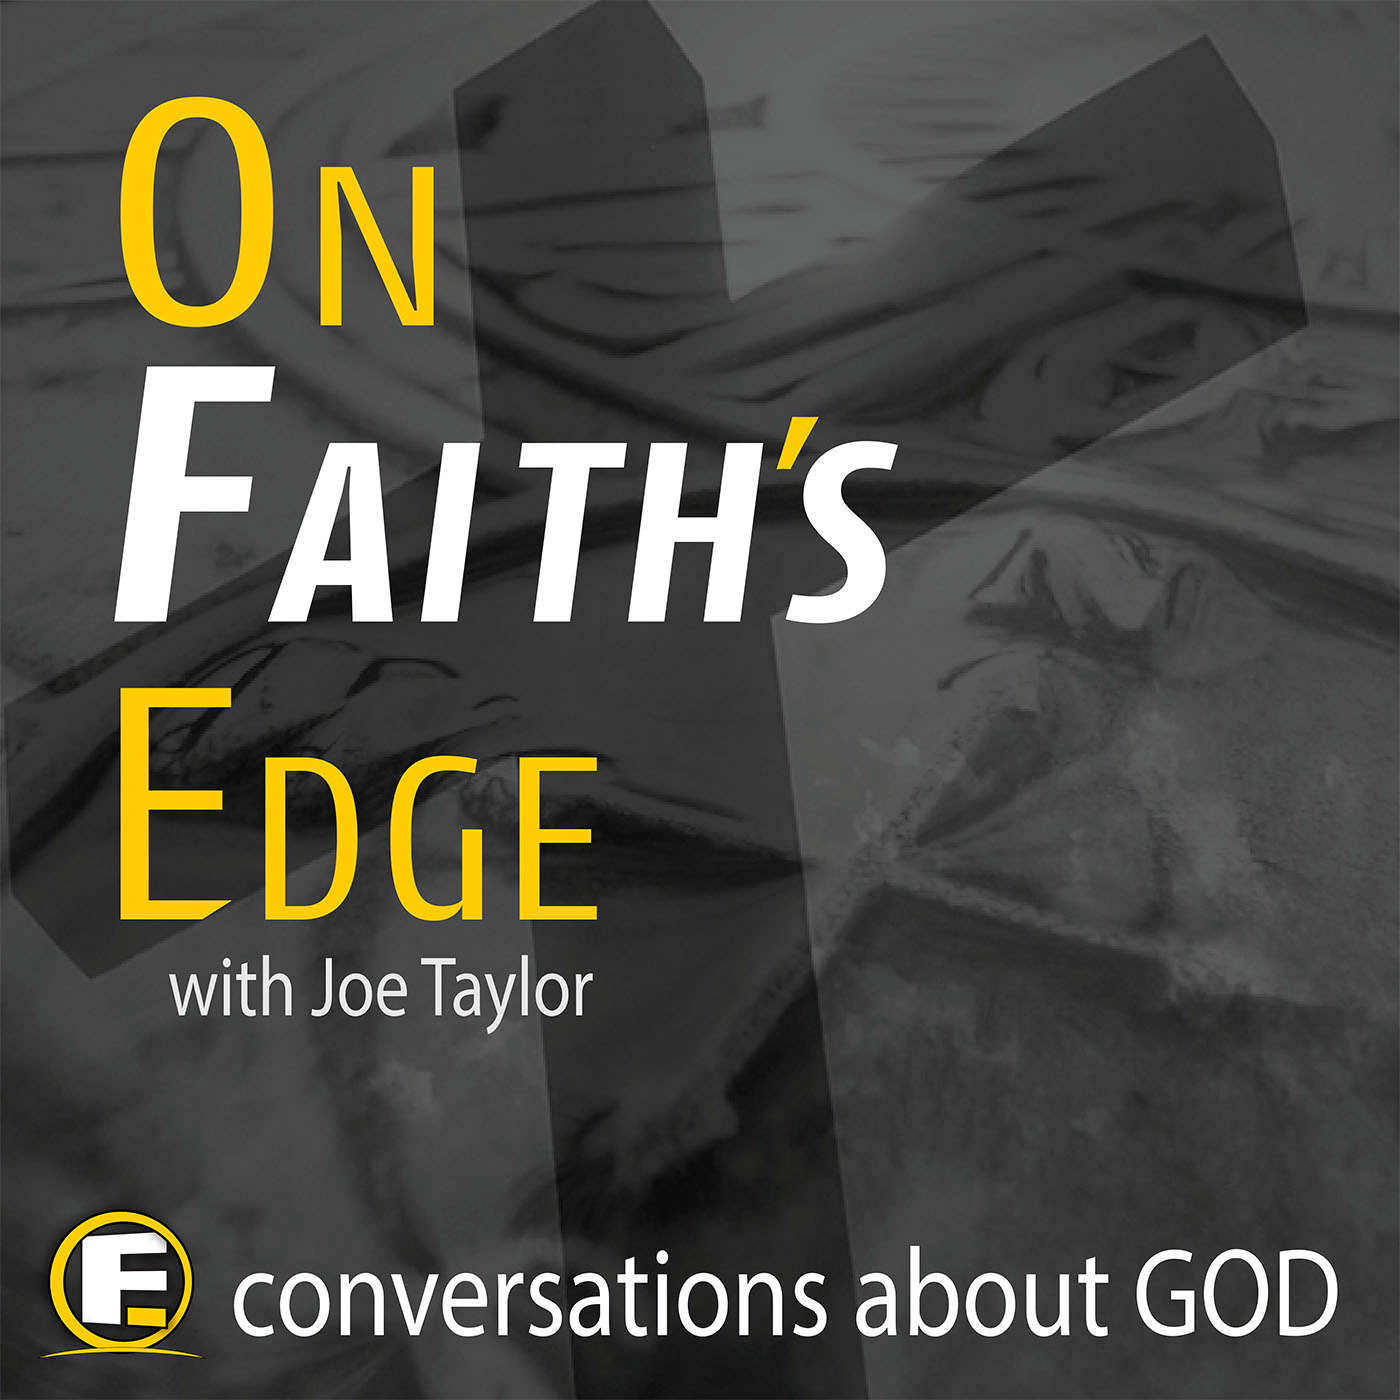 On Faith's Edge